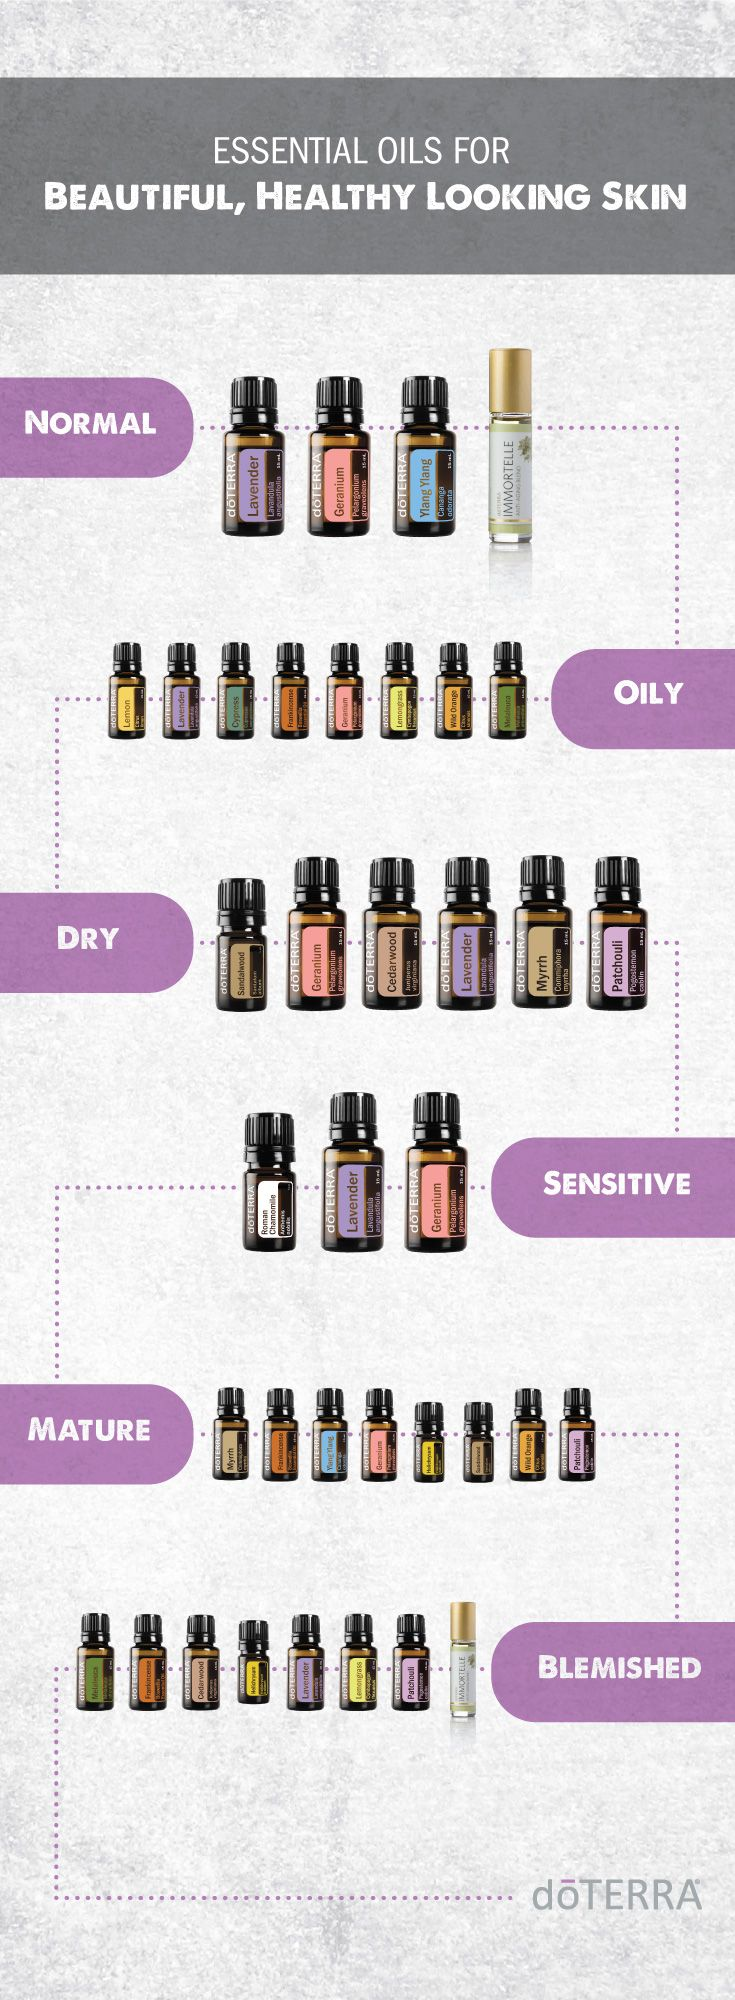 Pin On Doterra Essential Oils